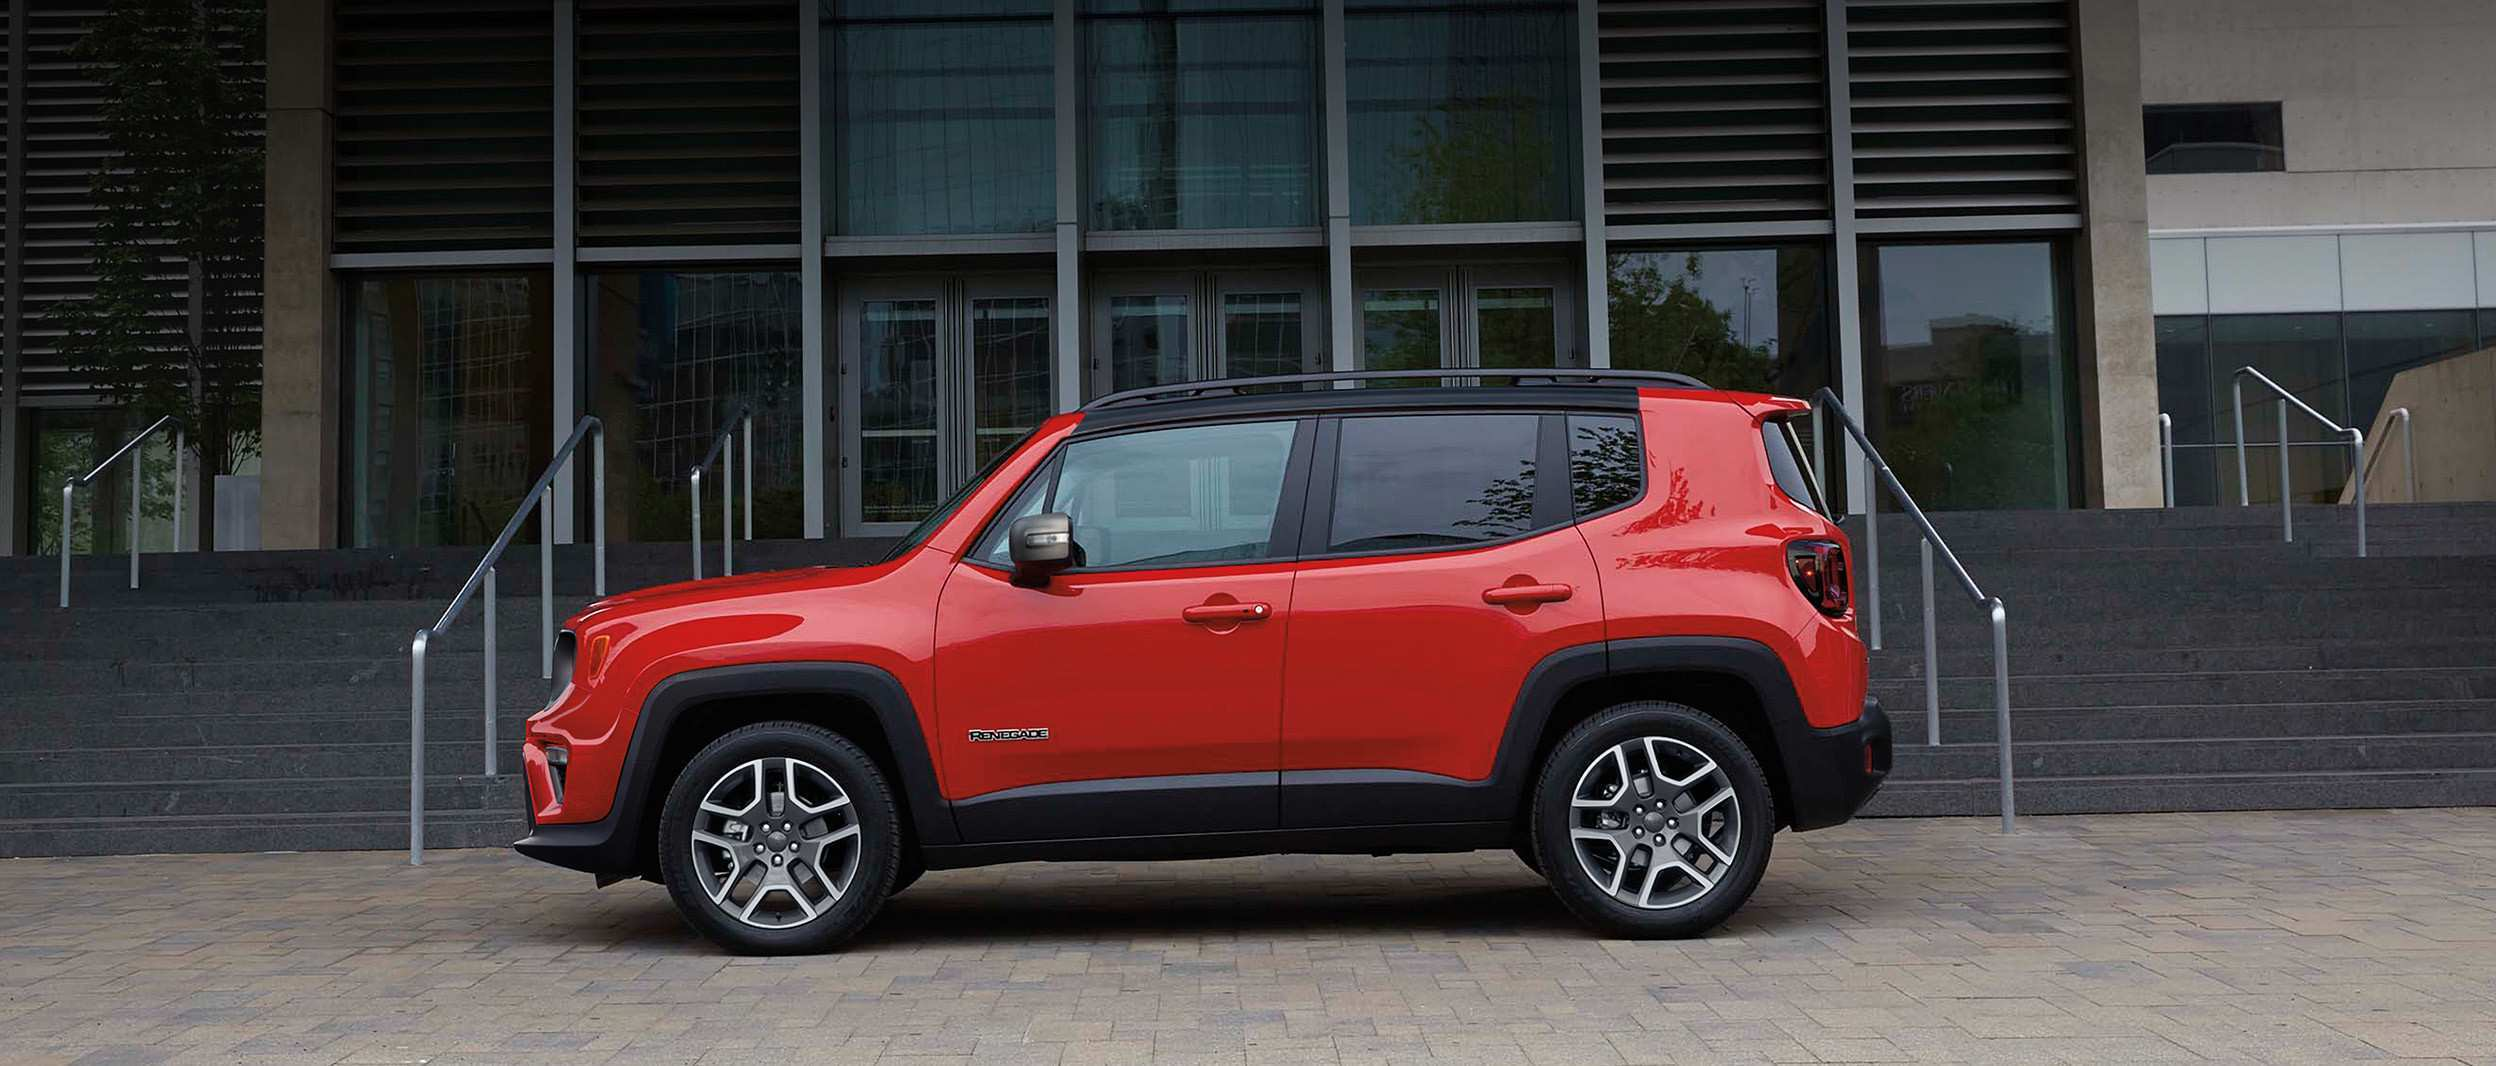 44 Best 2019 Jeep Renegade Review New Concept